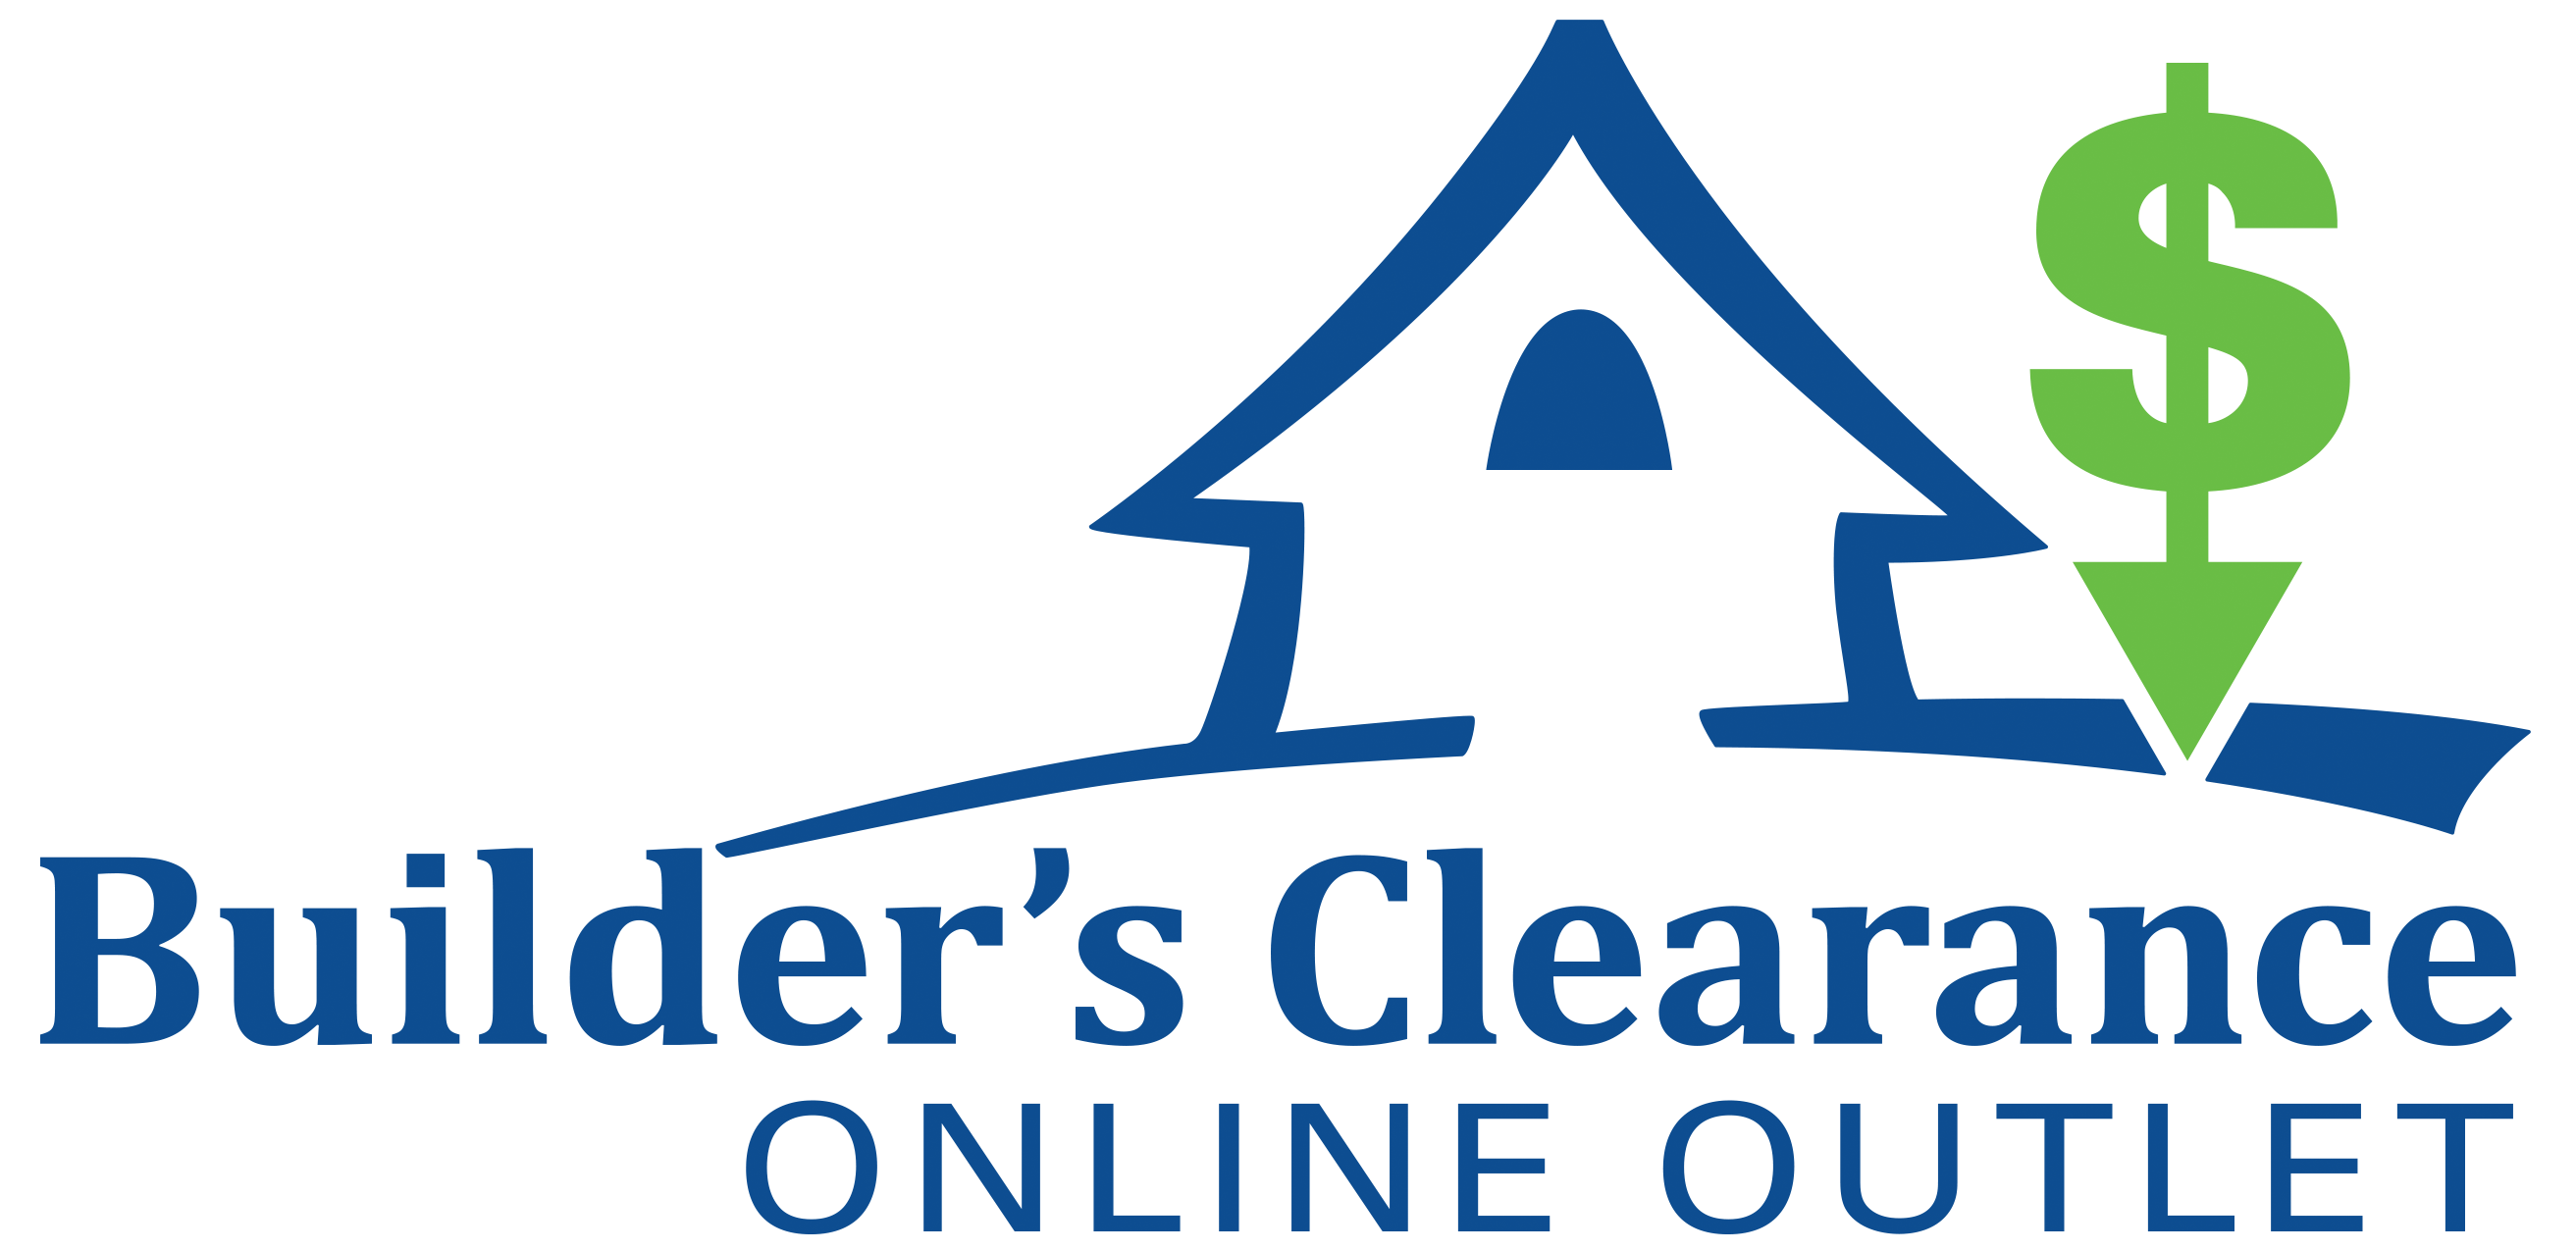 Builder's Clearance Online Outlet